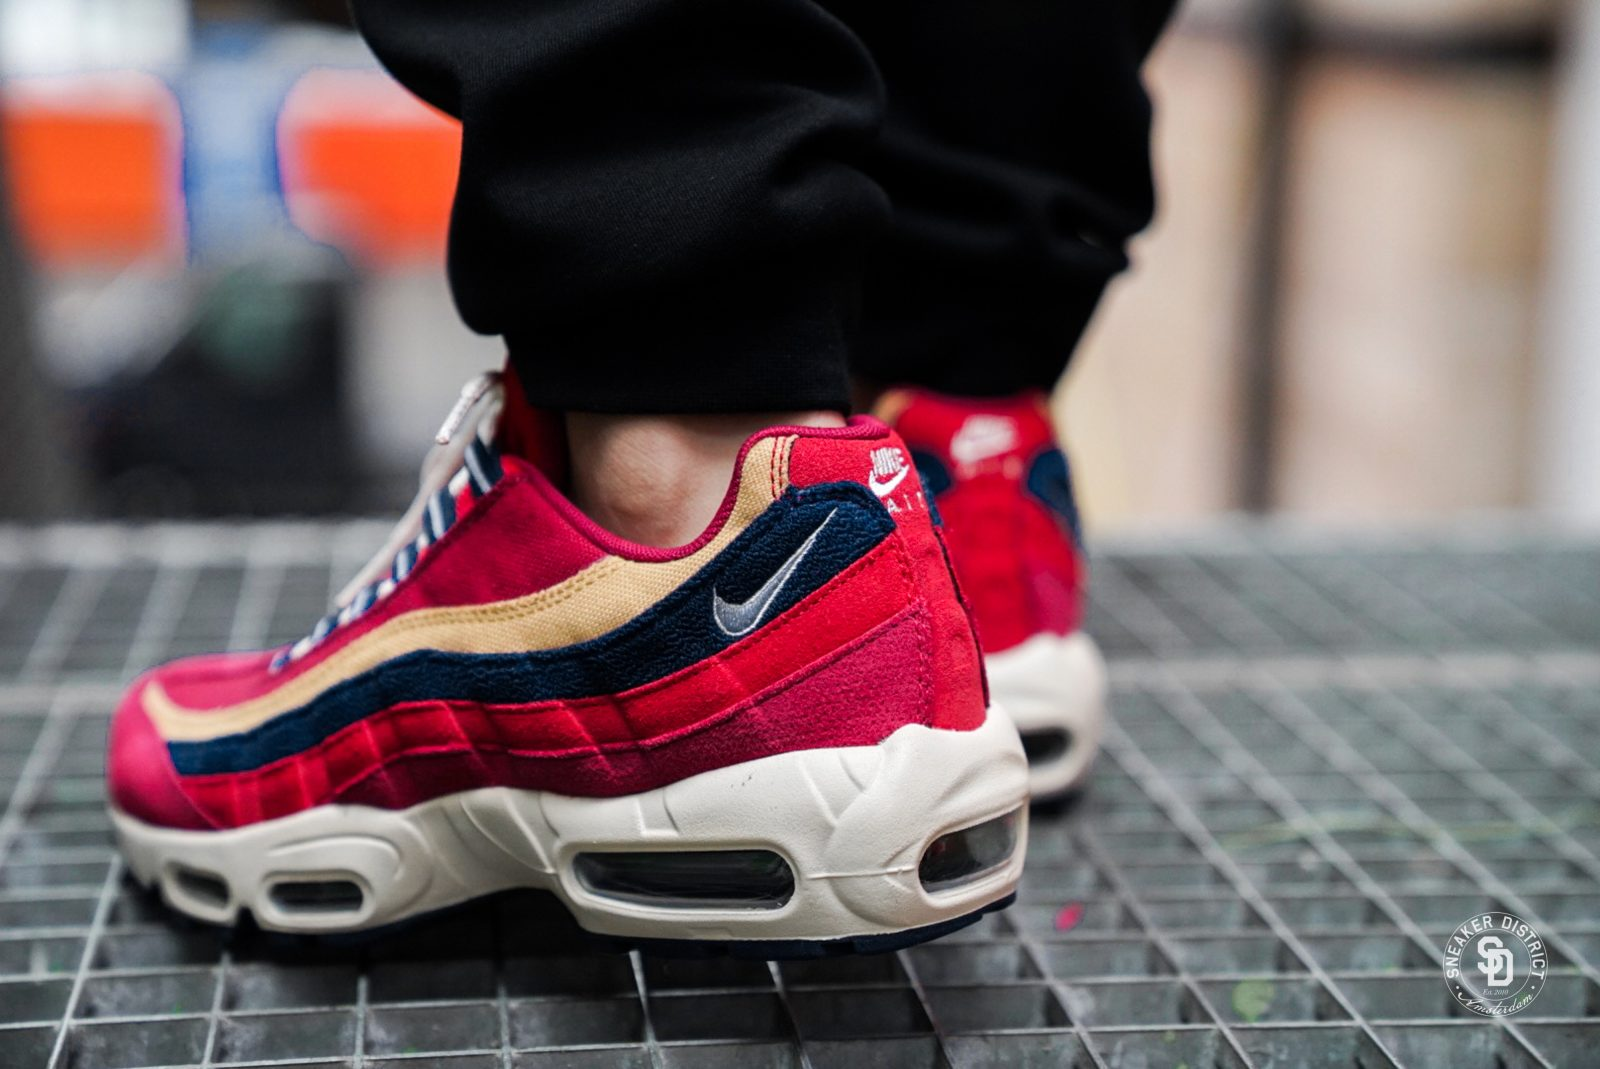 NIKE Nike Air Max 95 sneakers Red RED CRUSHPROVENCE PURPLE